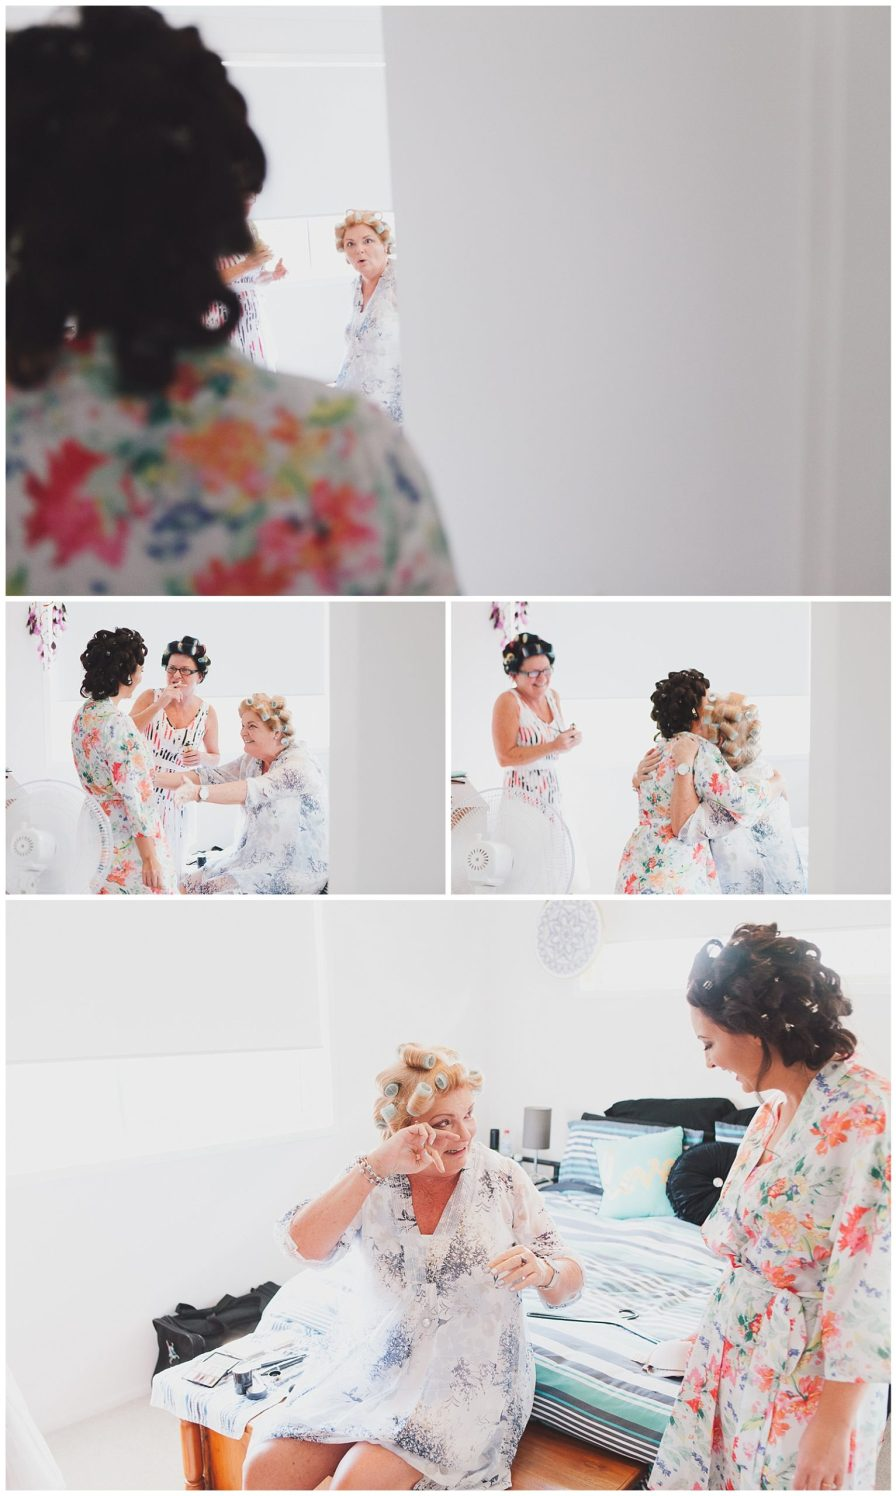 Dream wedding, Bel Amour Wedding Photography,Brisbane wedding photographer,Destination wedding photographer,Thats Darling,Wedding,wedding photographer,